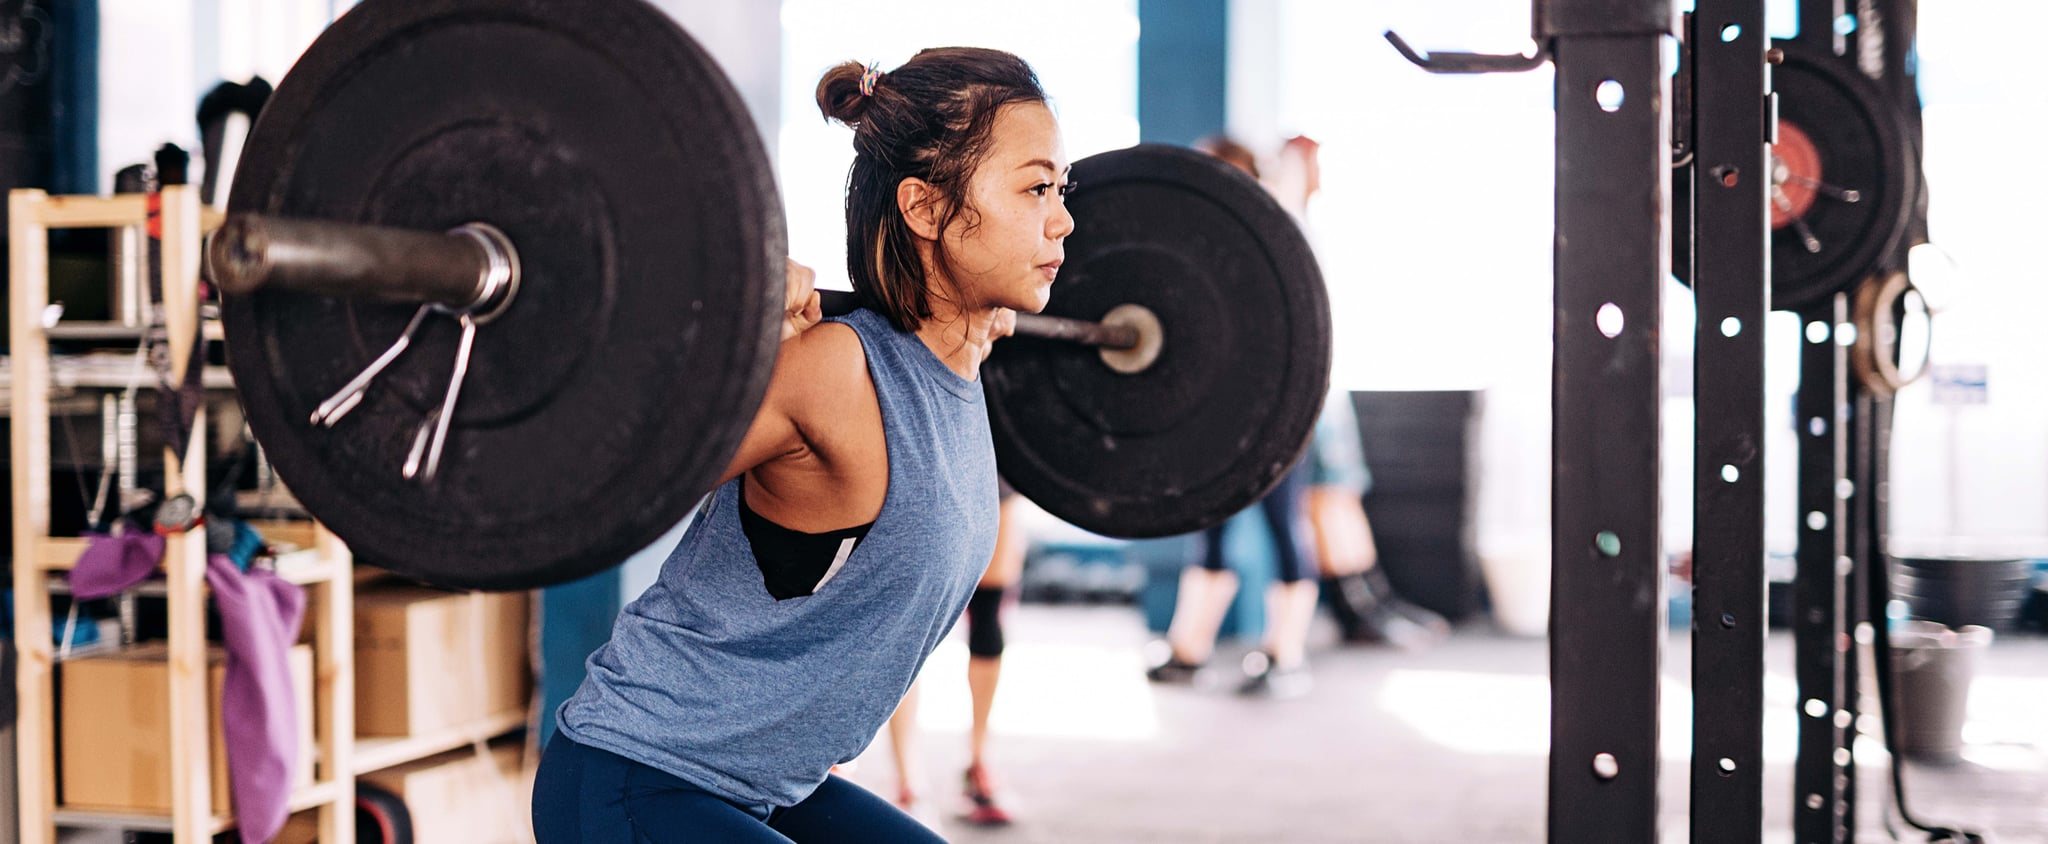 Weekly Muscle Workout Plan For Women